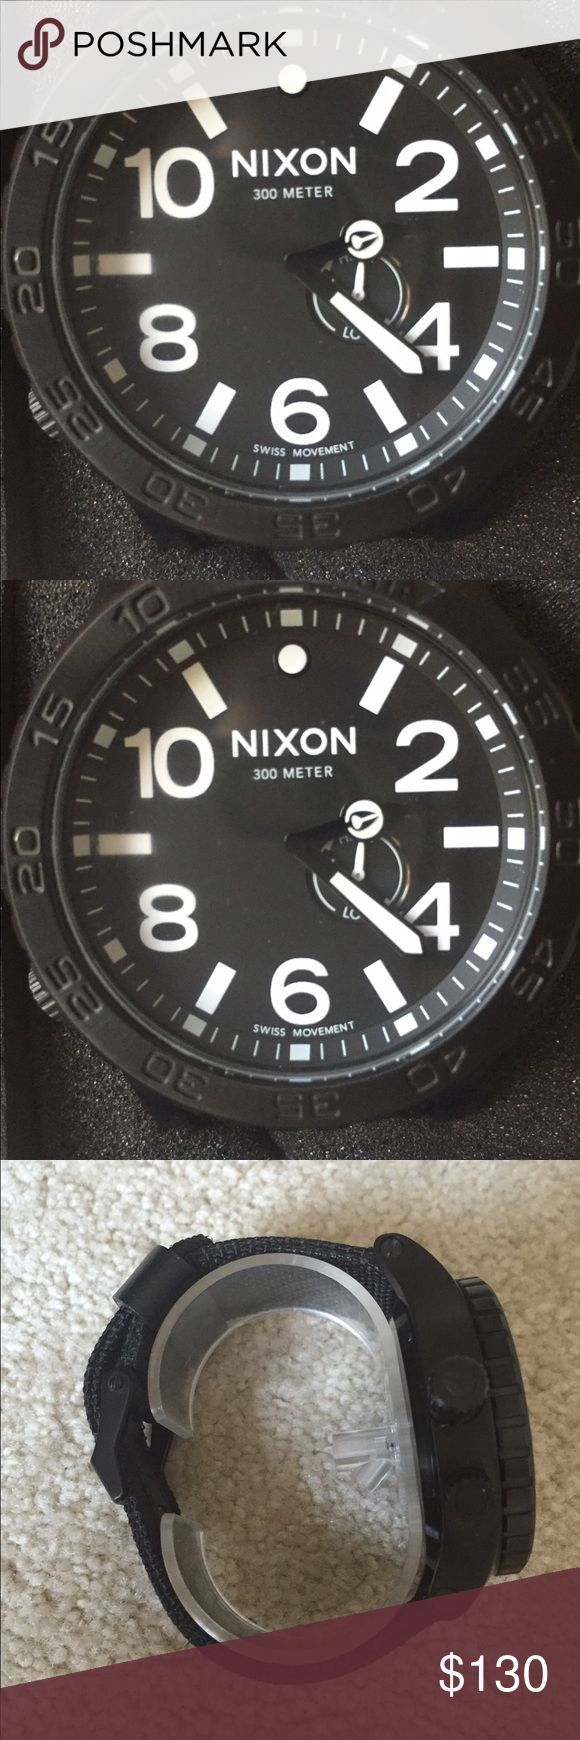 "Nixon men's black large face watch 50 mm case. Nixon ""Simplify"" mens black watch (""THE 51-30) 300m stainless steel watch. Face measures 50mm. Band is thick canvas with belt buckle take closure. Black face and black band with white numbers. Nixon Accessories Watches"